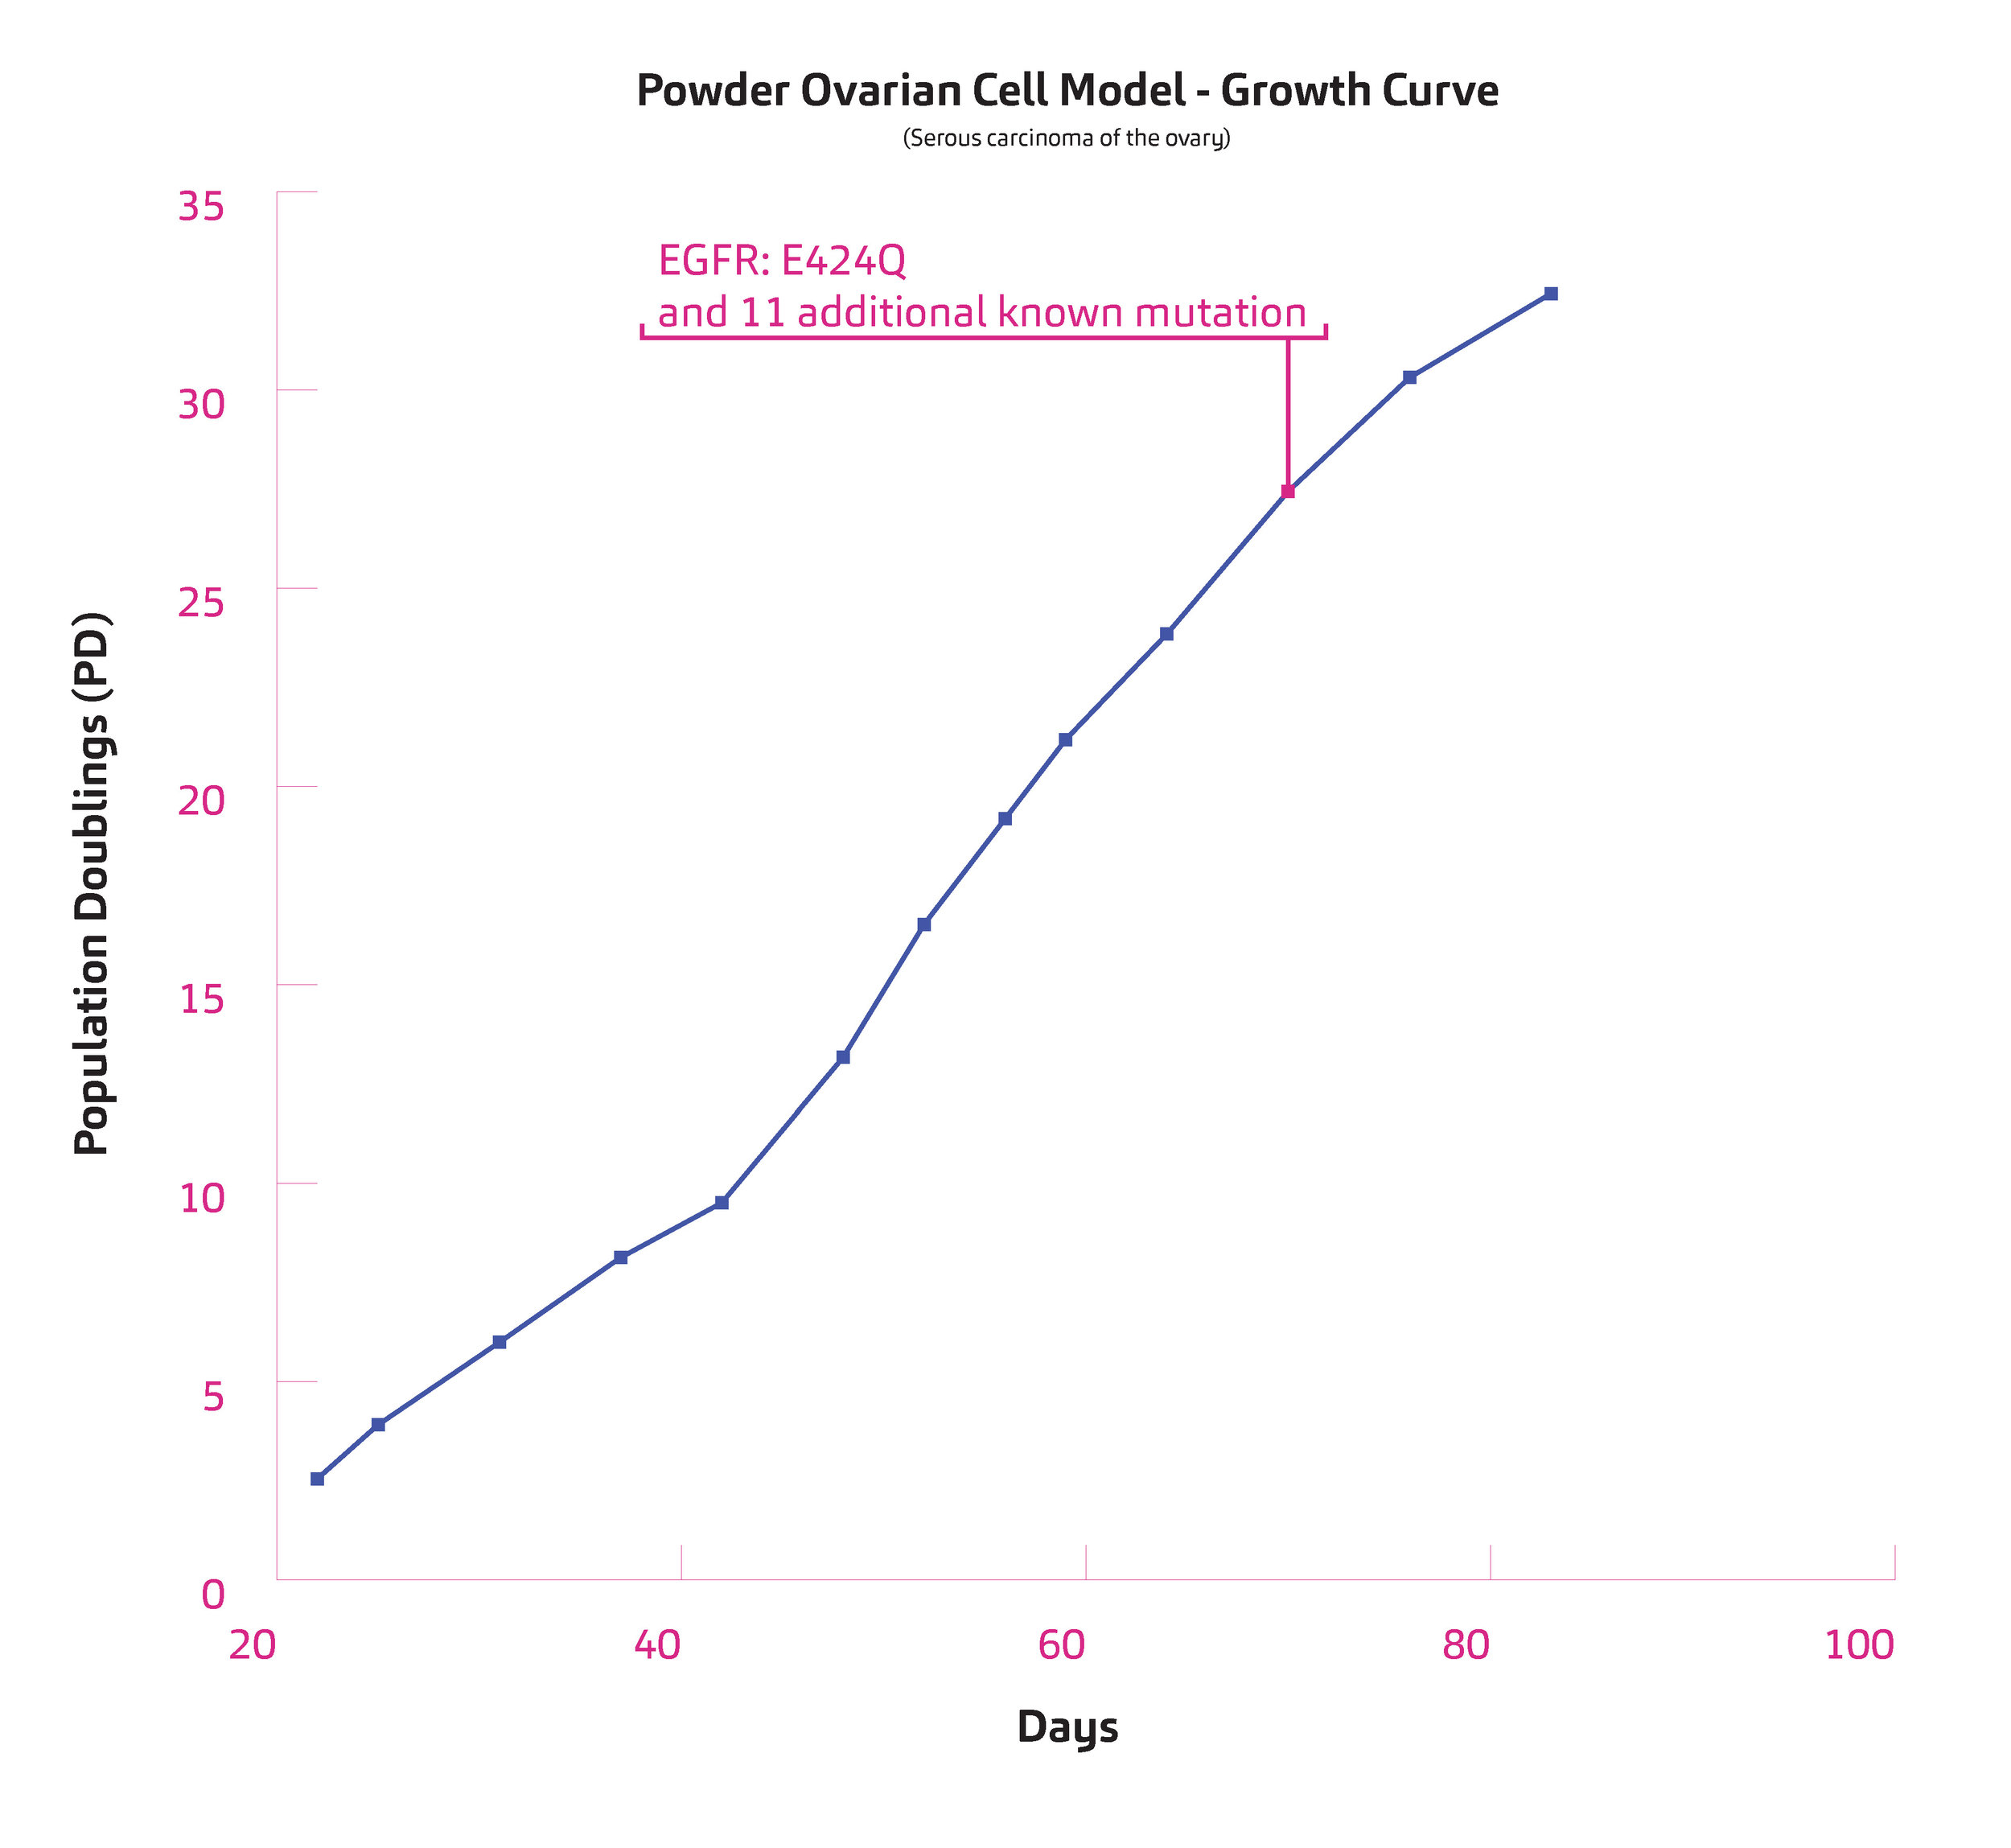 CellModel_PopulationCharts_Powder.jpg